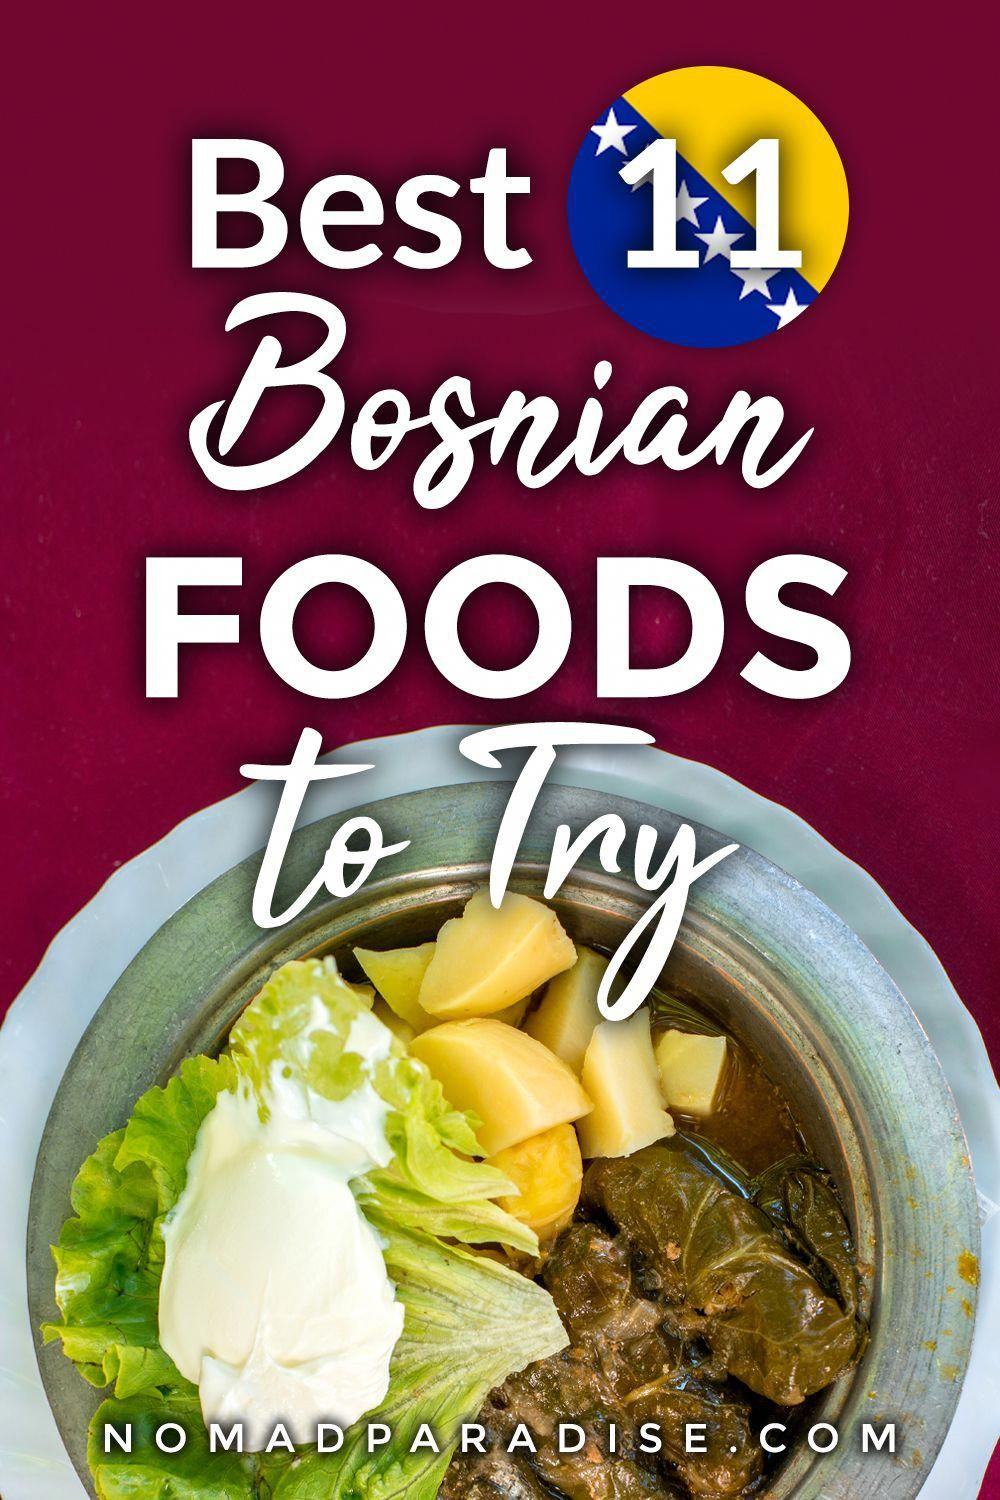 Bosnian Food - 11 Best Traditional Bosnian Dishes Recommended by a Local - Nomad Paradise #Travel #TravelFood #Bosnia #Europe #BosnianFood #TravelFoods #Foodie #WorldTravel #bosnianrecipes